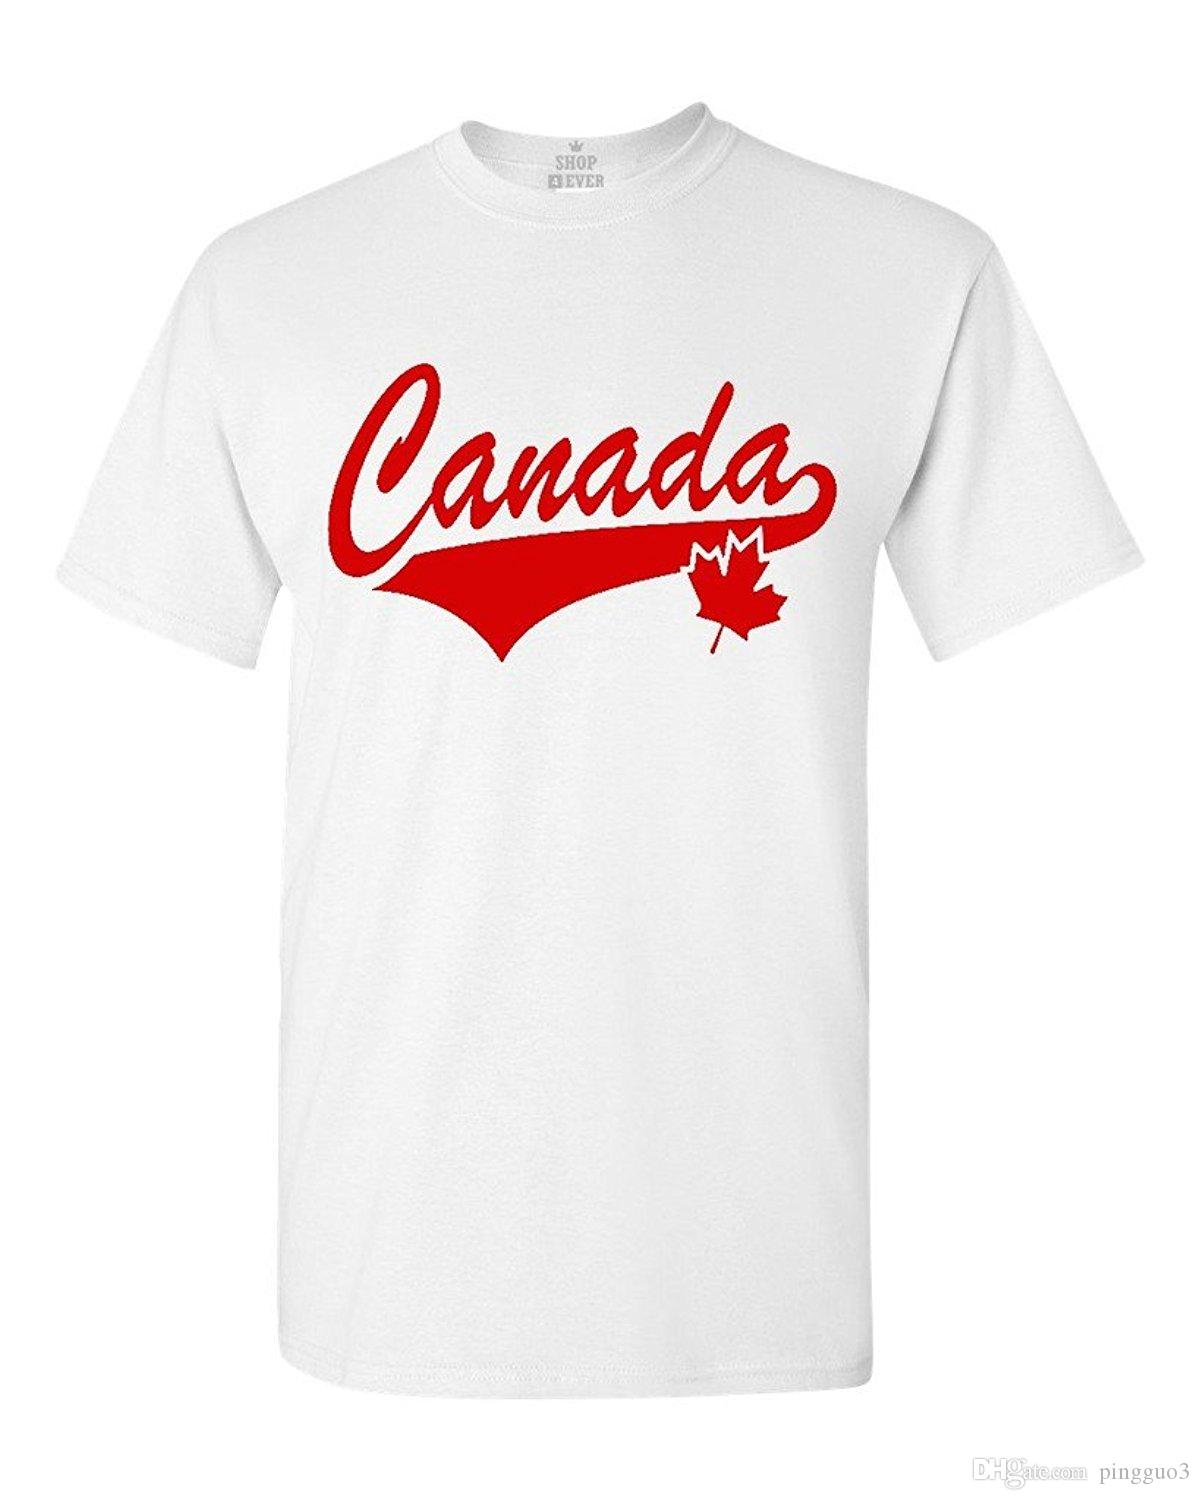 ca3e8b5ea3a48 Tee Shirt Design Canada – EDGE Engineering and Consulting Limited